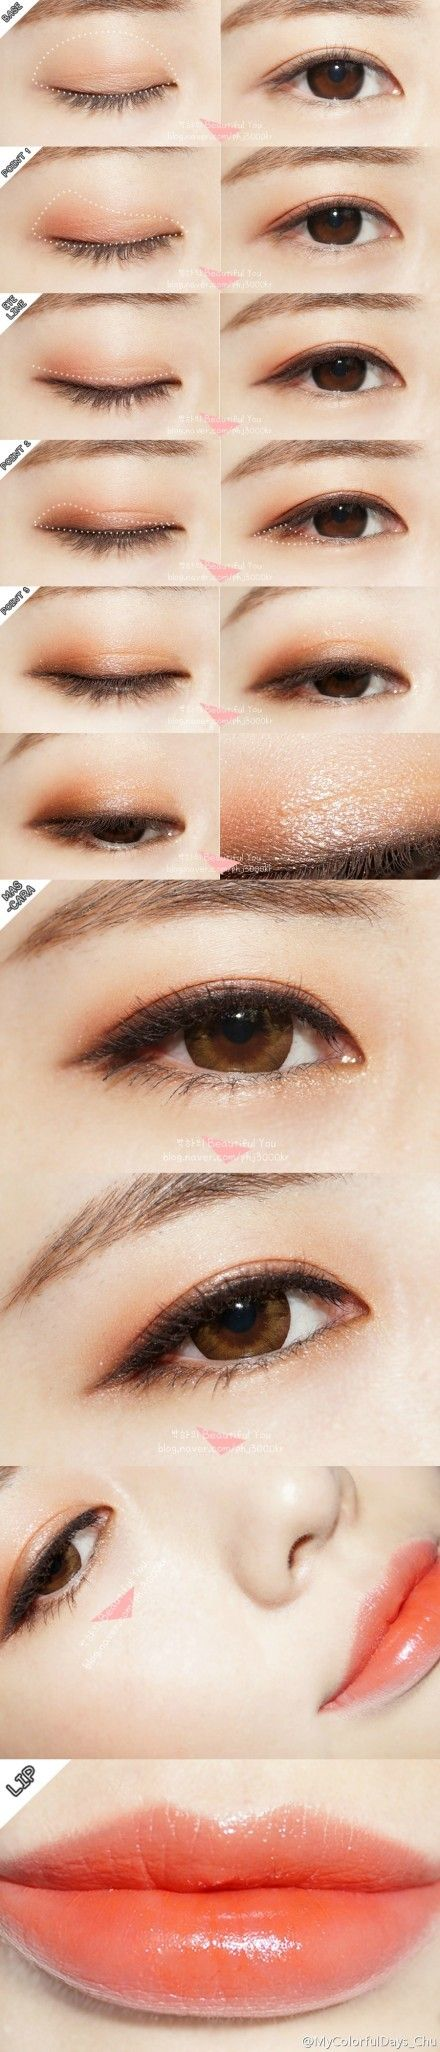 asian make up || ✨www.SkincareInKorea.info ✨www.DebbieKrug.org